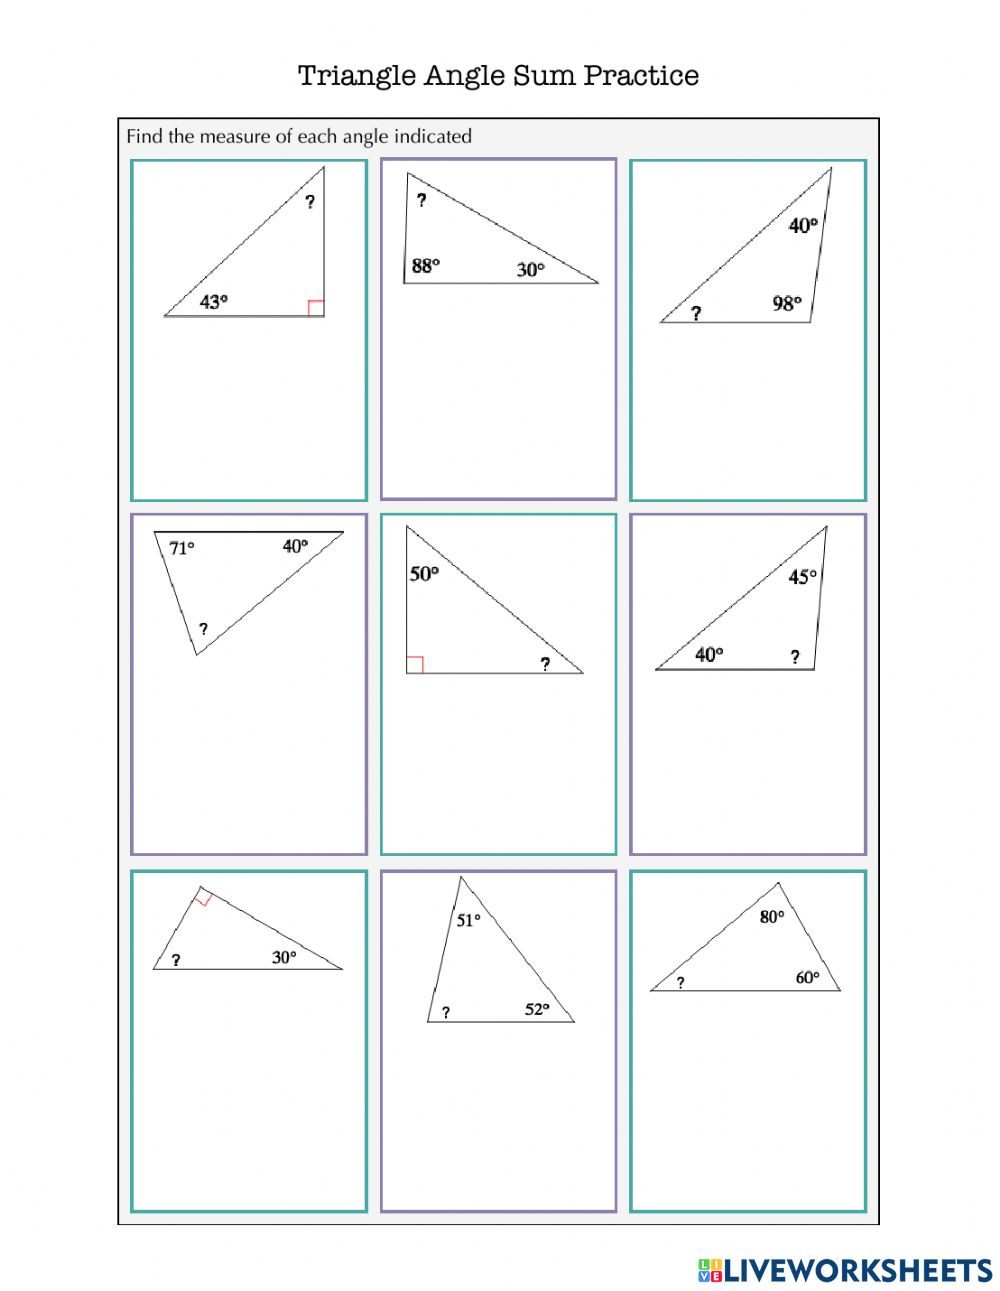 Triangle Angle Sum Practice worksheet Regarding Triangle Angle Sum Worksheet